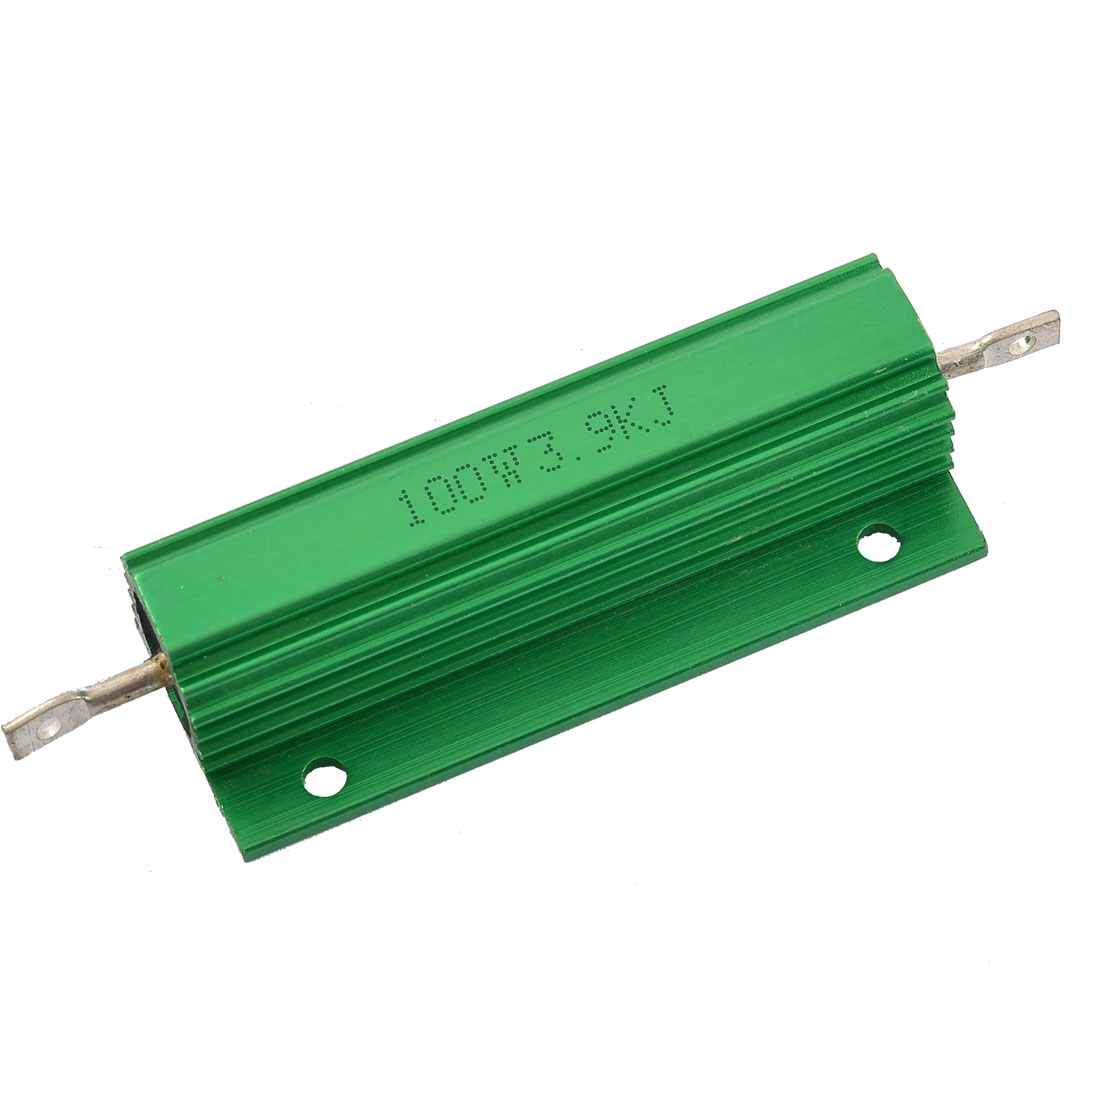 Aluminum Case Chassis Mounted 100W Watt 3.9K Ohm Wirewound Resistor